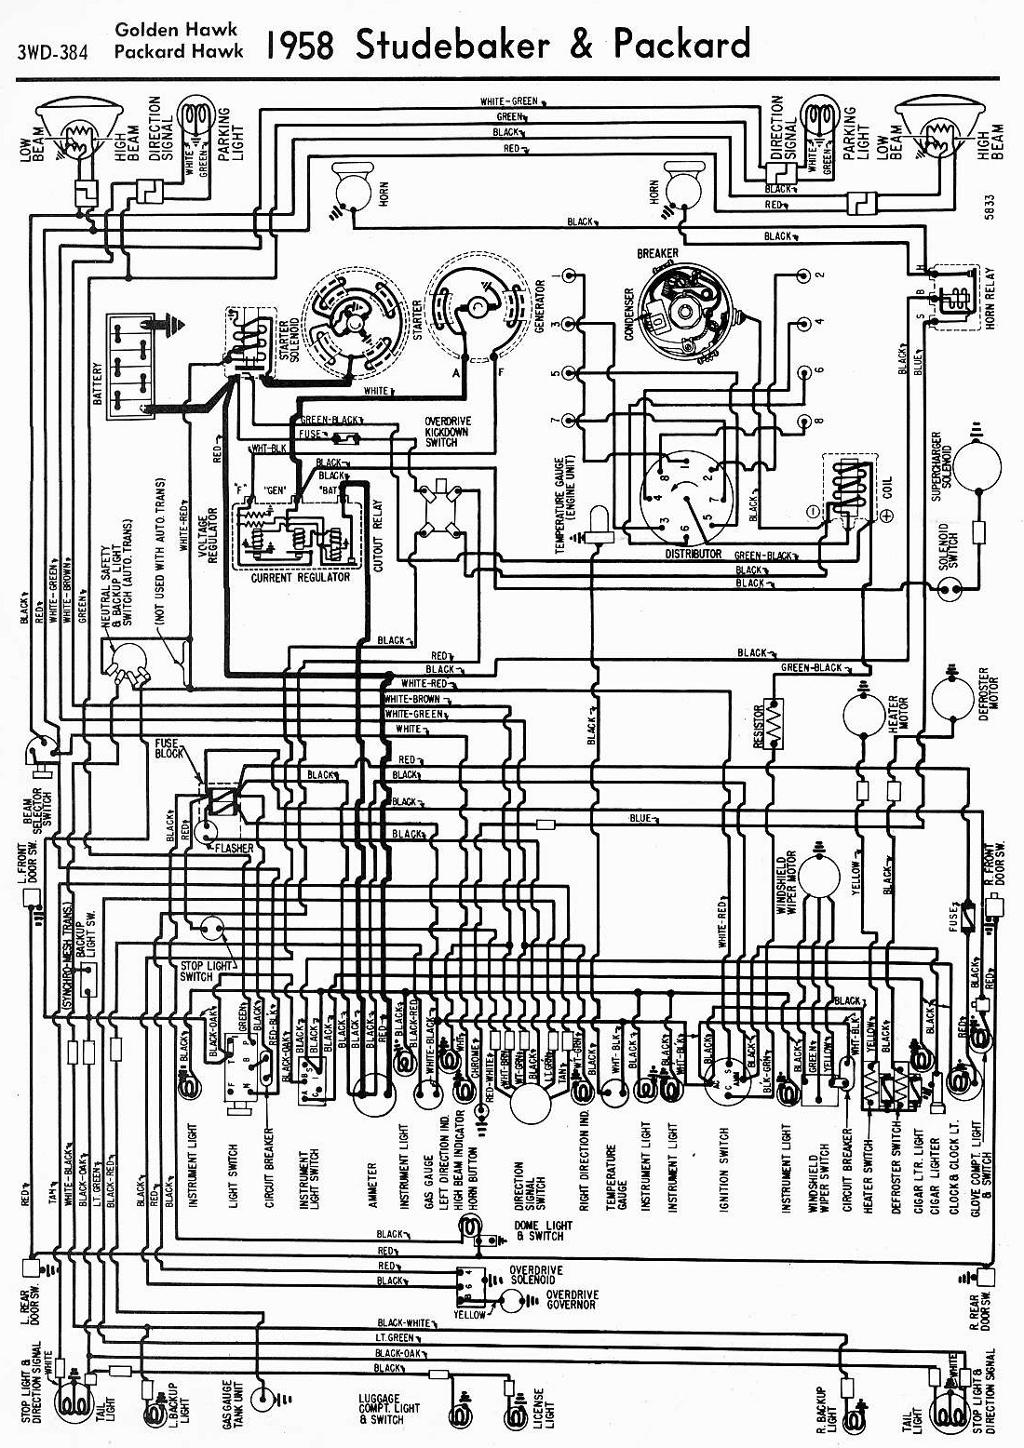 1941 Dodge Wiring Diagram Library 90 Jeep Yj Diagrams Buick Free Schematics Data U2022 87 Wrangler